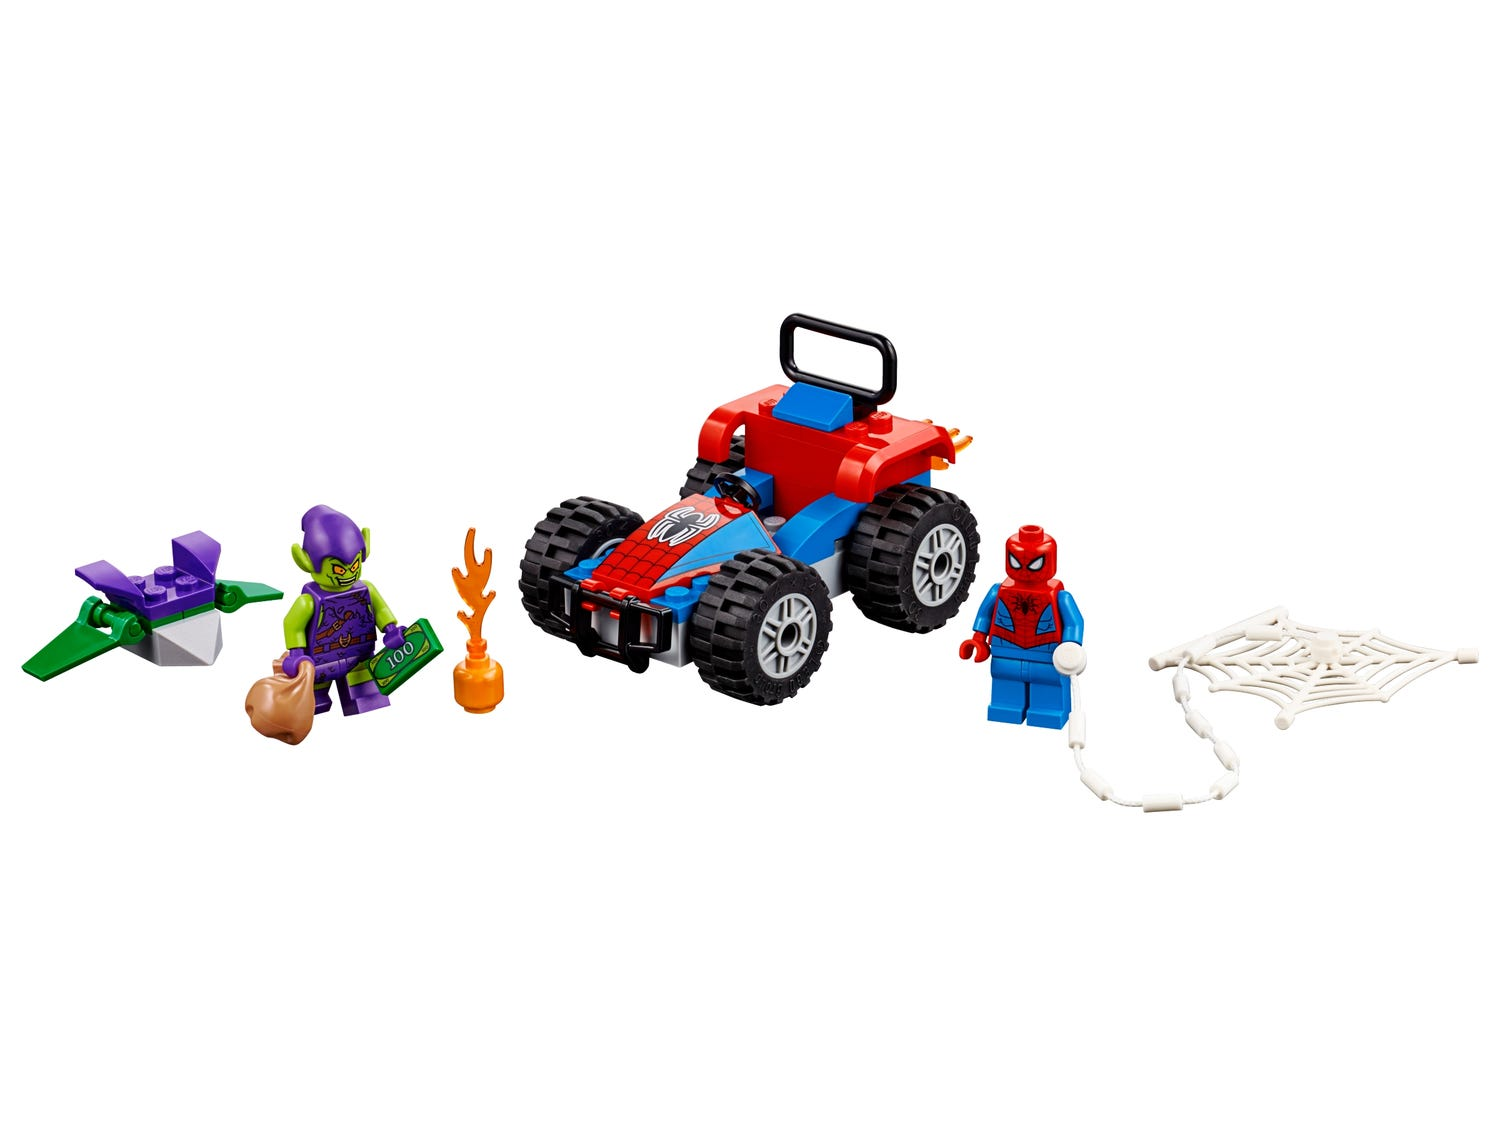 Spider Man Car Chase 76133 Marvel Buy Online At The Official Lego Shop Us